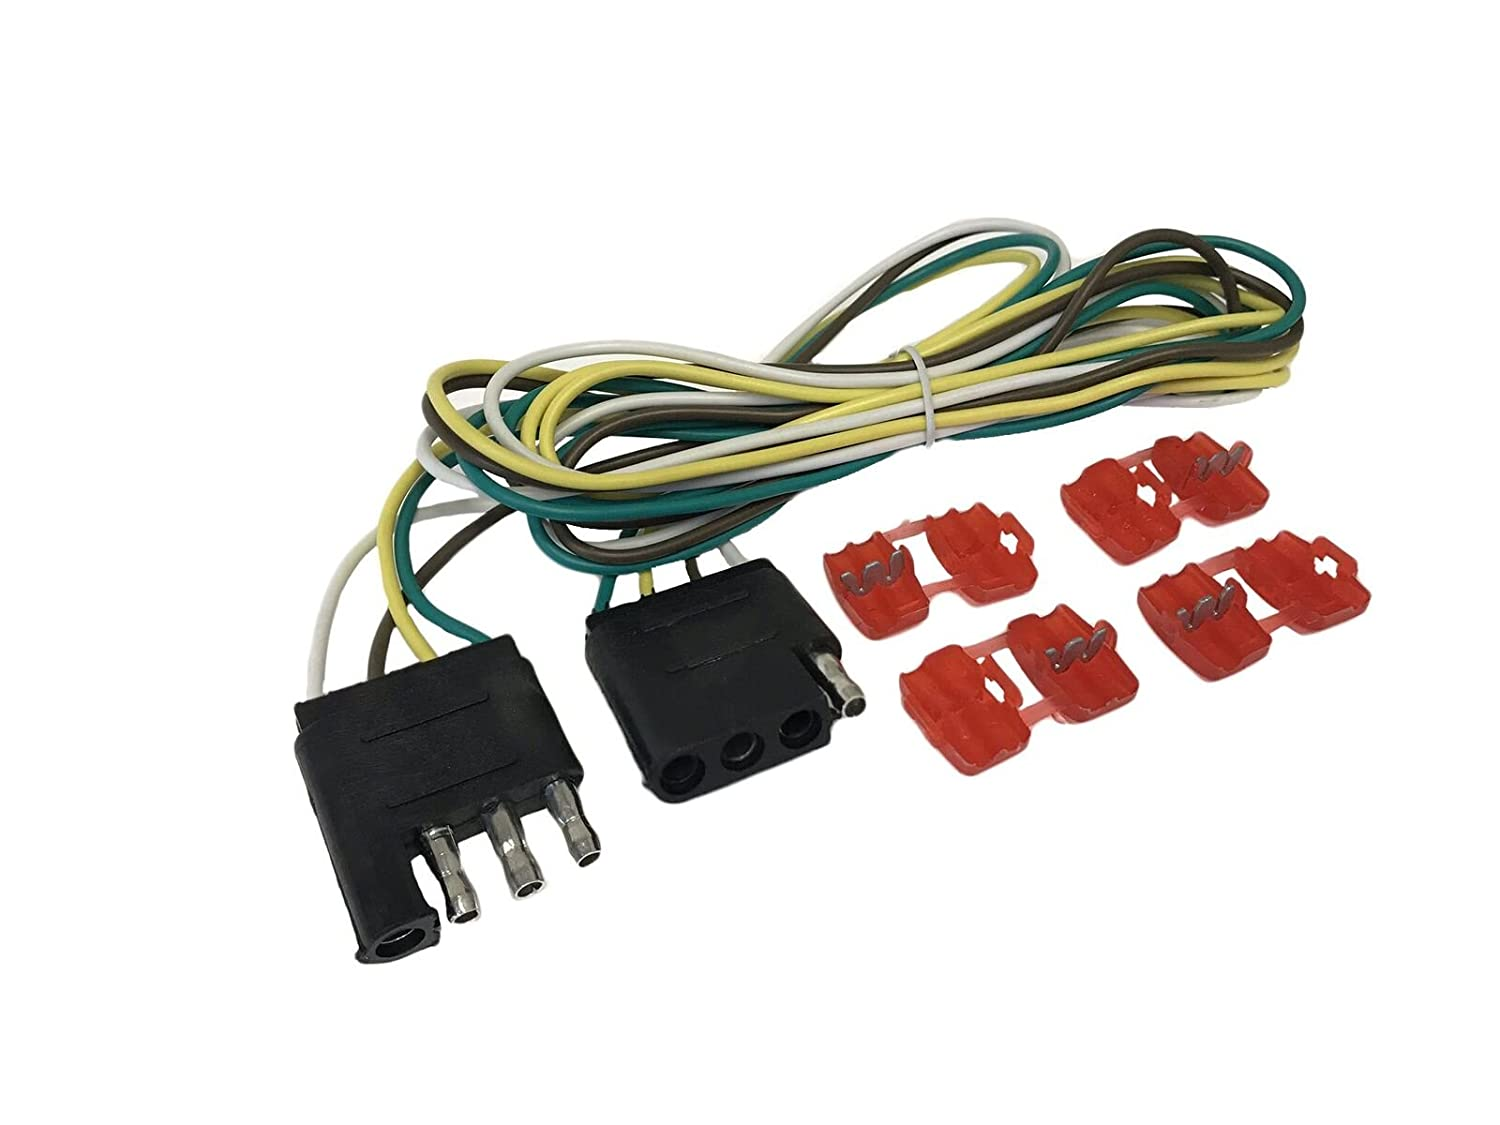 Binoster 4 Way Trailer Wire Extension Wiring Harness Kit Hitch Light Color Truck Awg Coded Wires